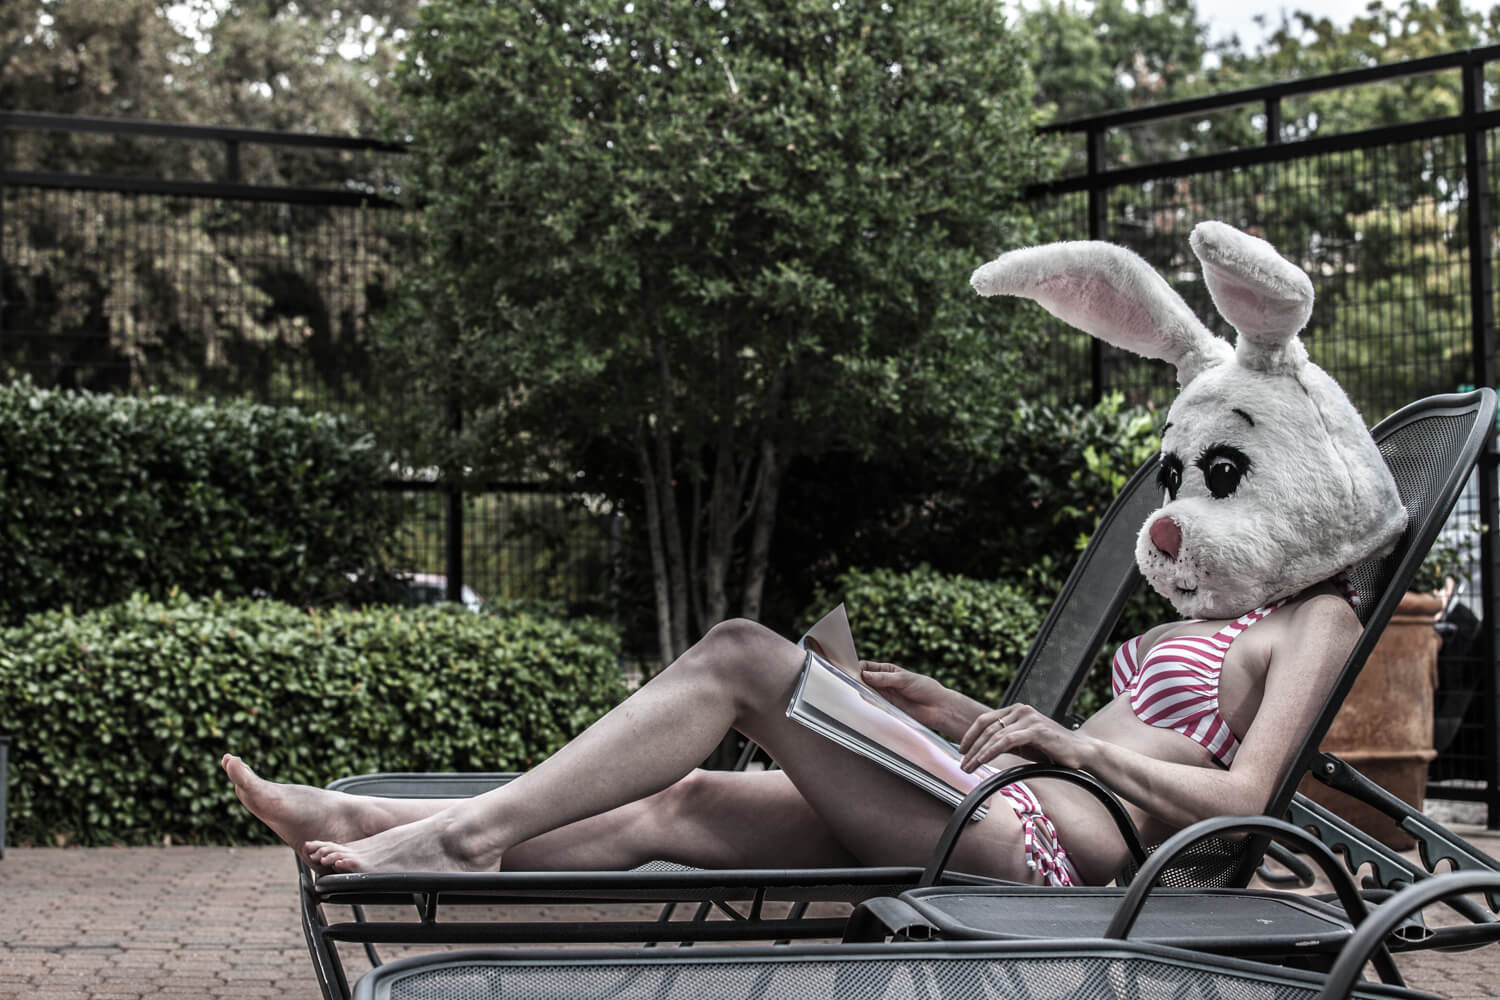 White Rabbit: American Bunny lounging on a beach chair reading fashion magazines